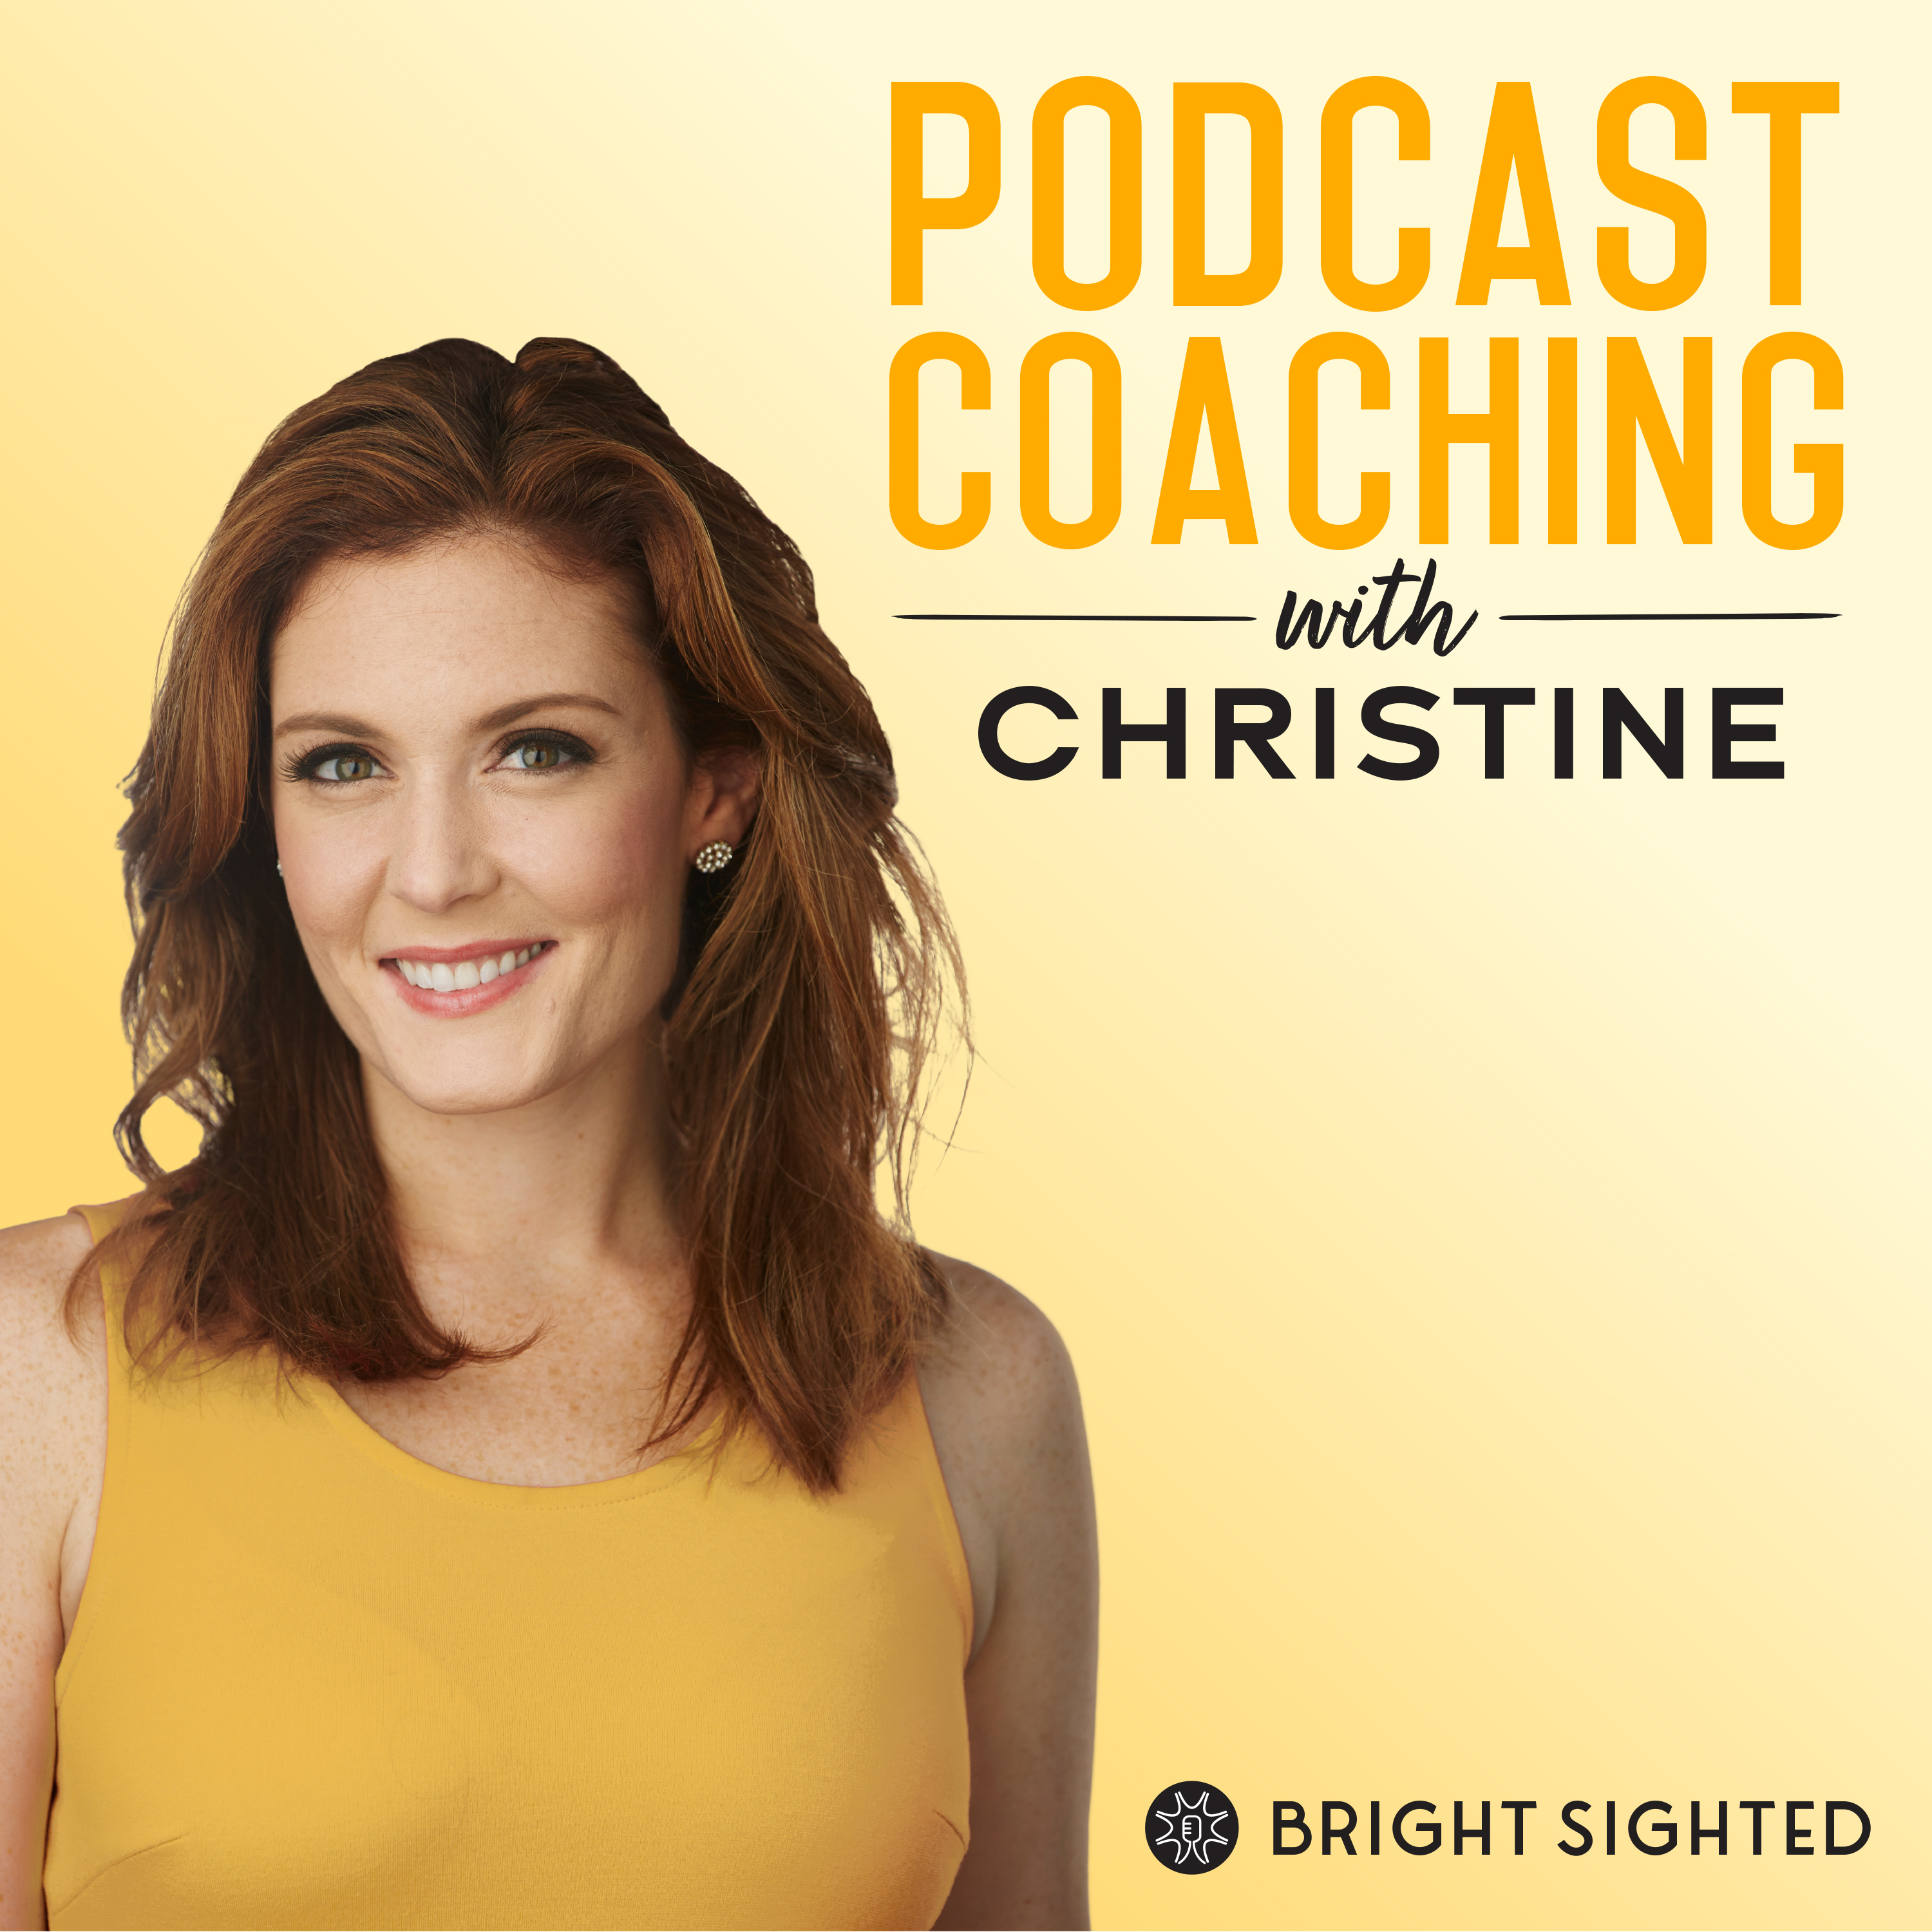 Podcast Coaching with Christine show art